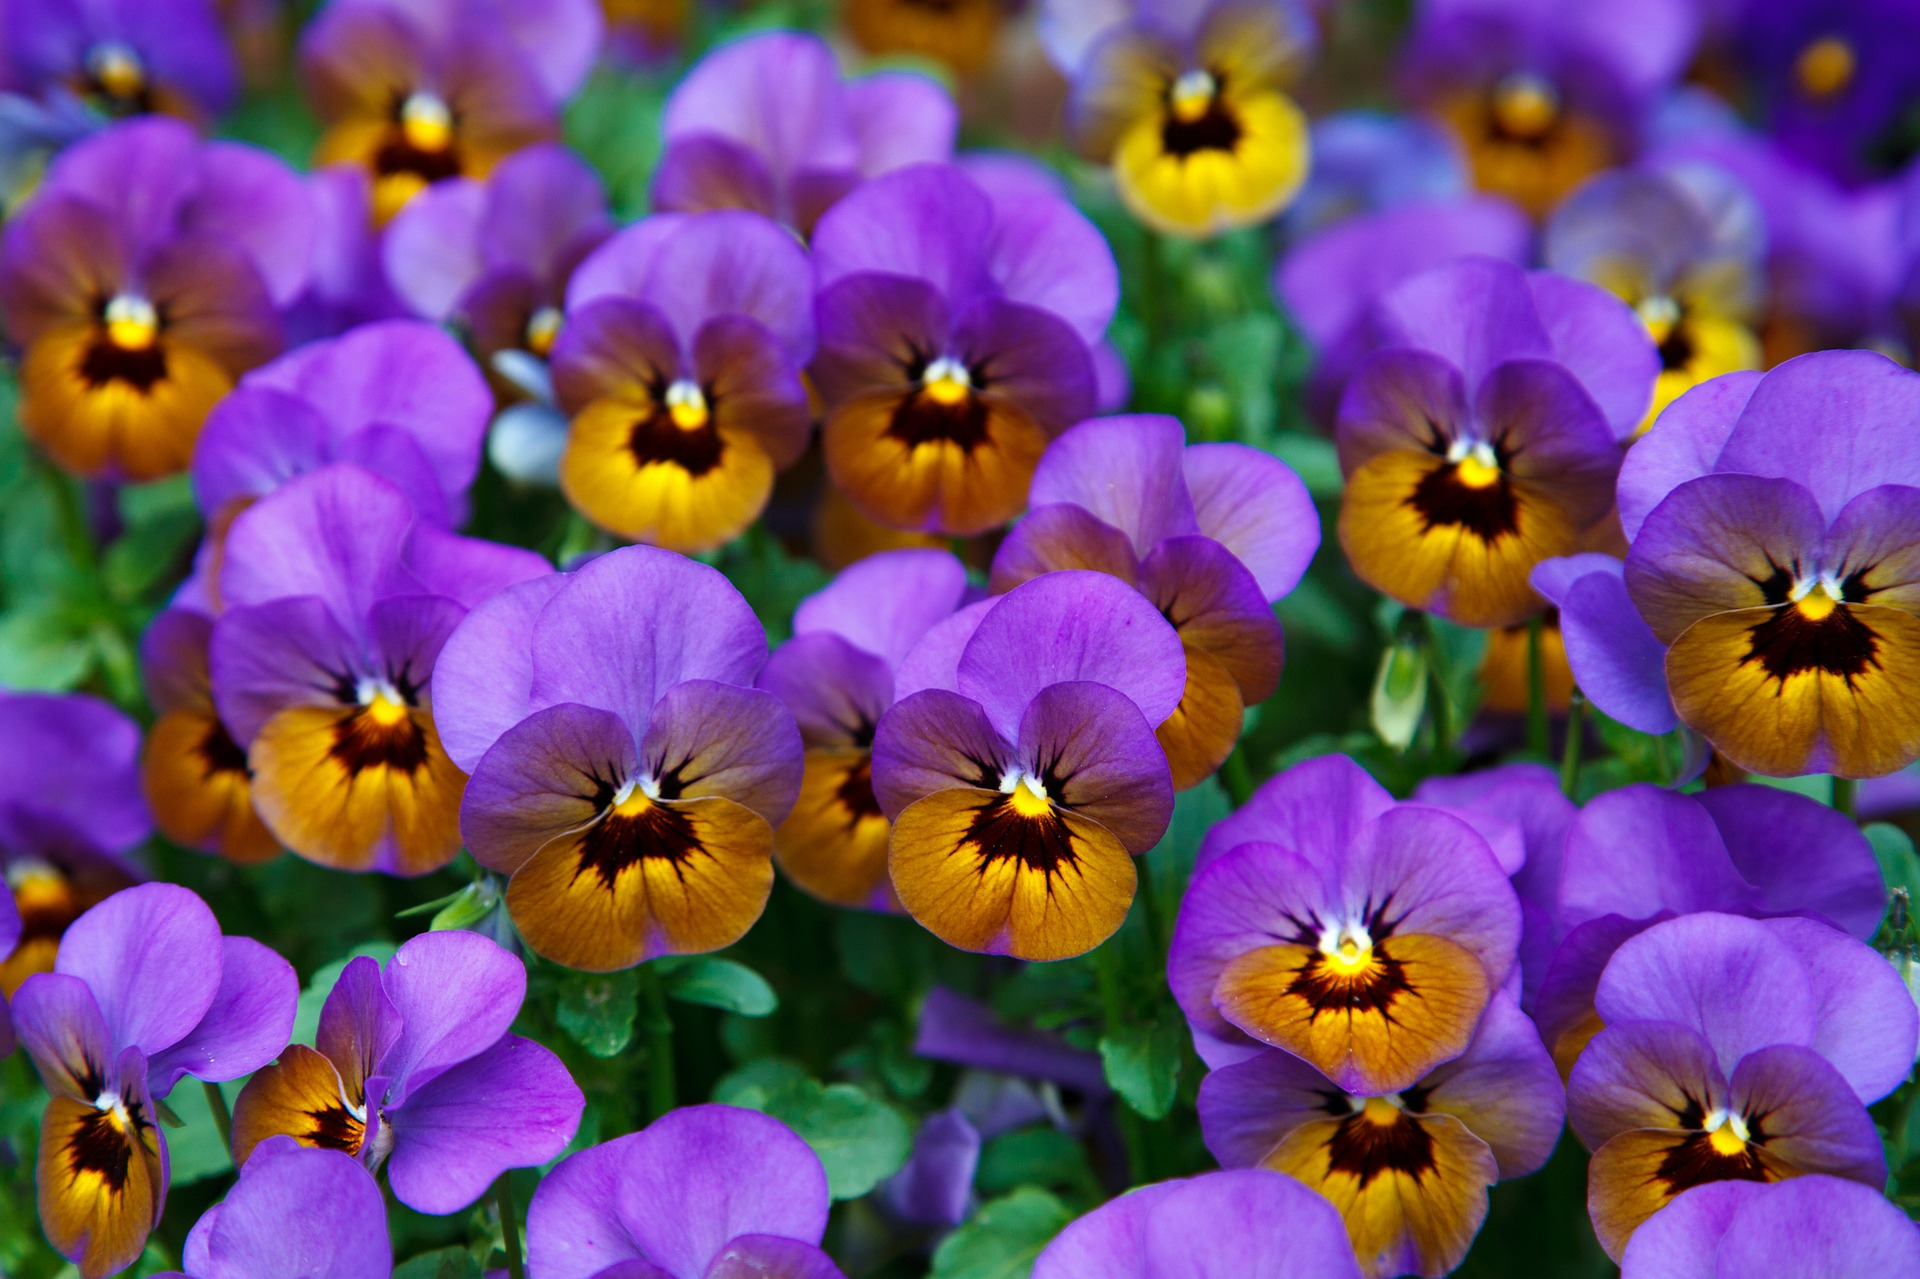 Pansies in the Garden, Blooming, Flower, Fragrance, Fresh, HQ Photo